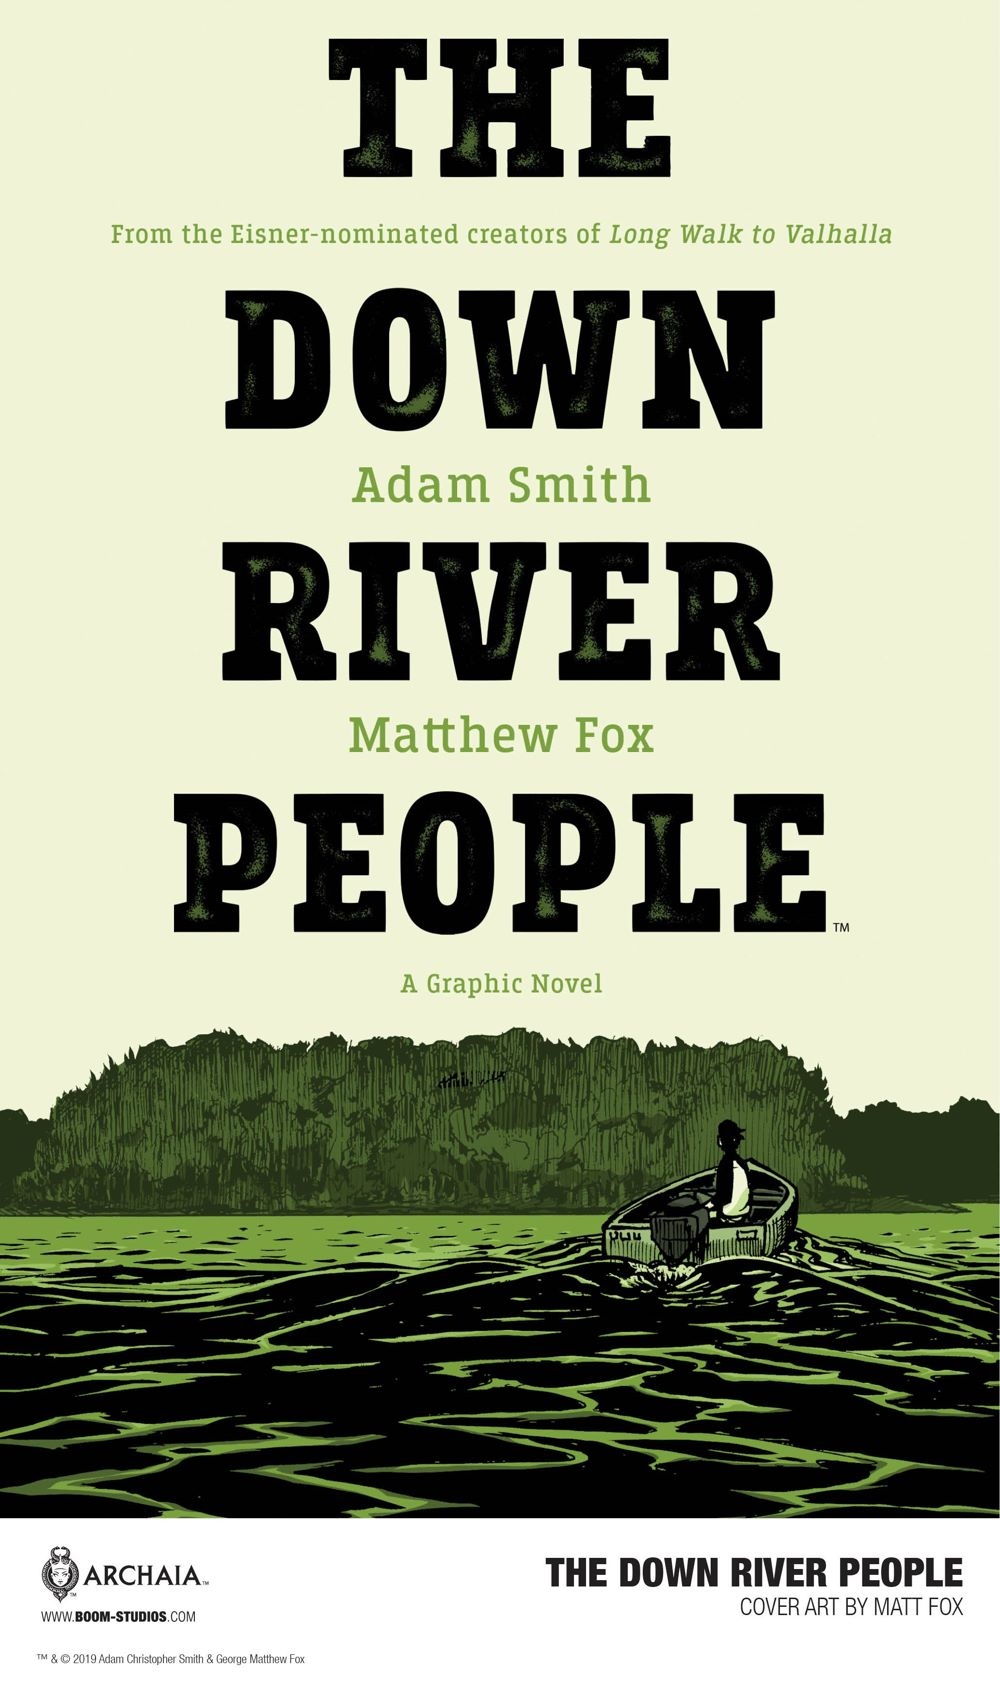 DownRiverPeople_Cover_Promo-1 First Look at BOOM! Studios' THE DOWN RIVER PEOPLE GN